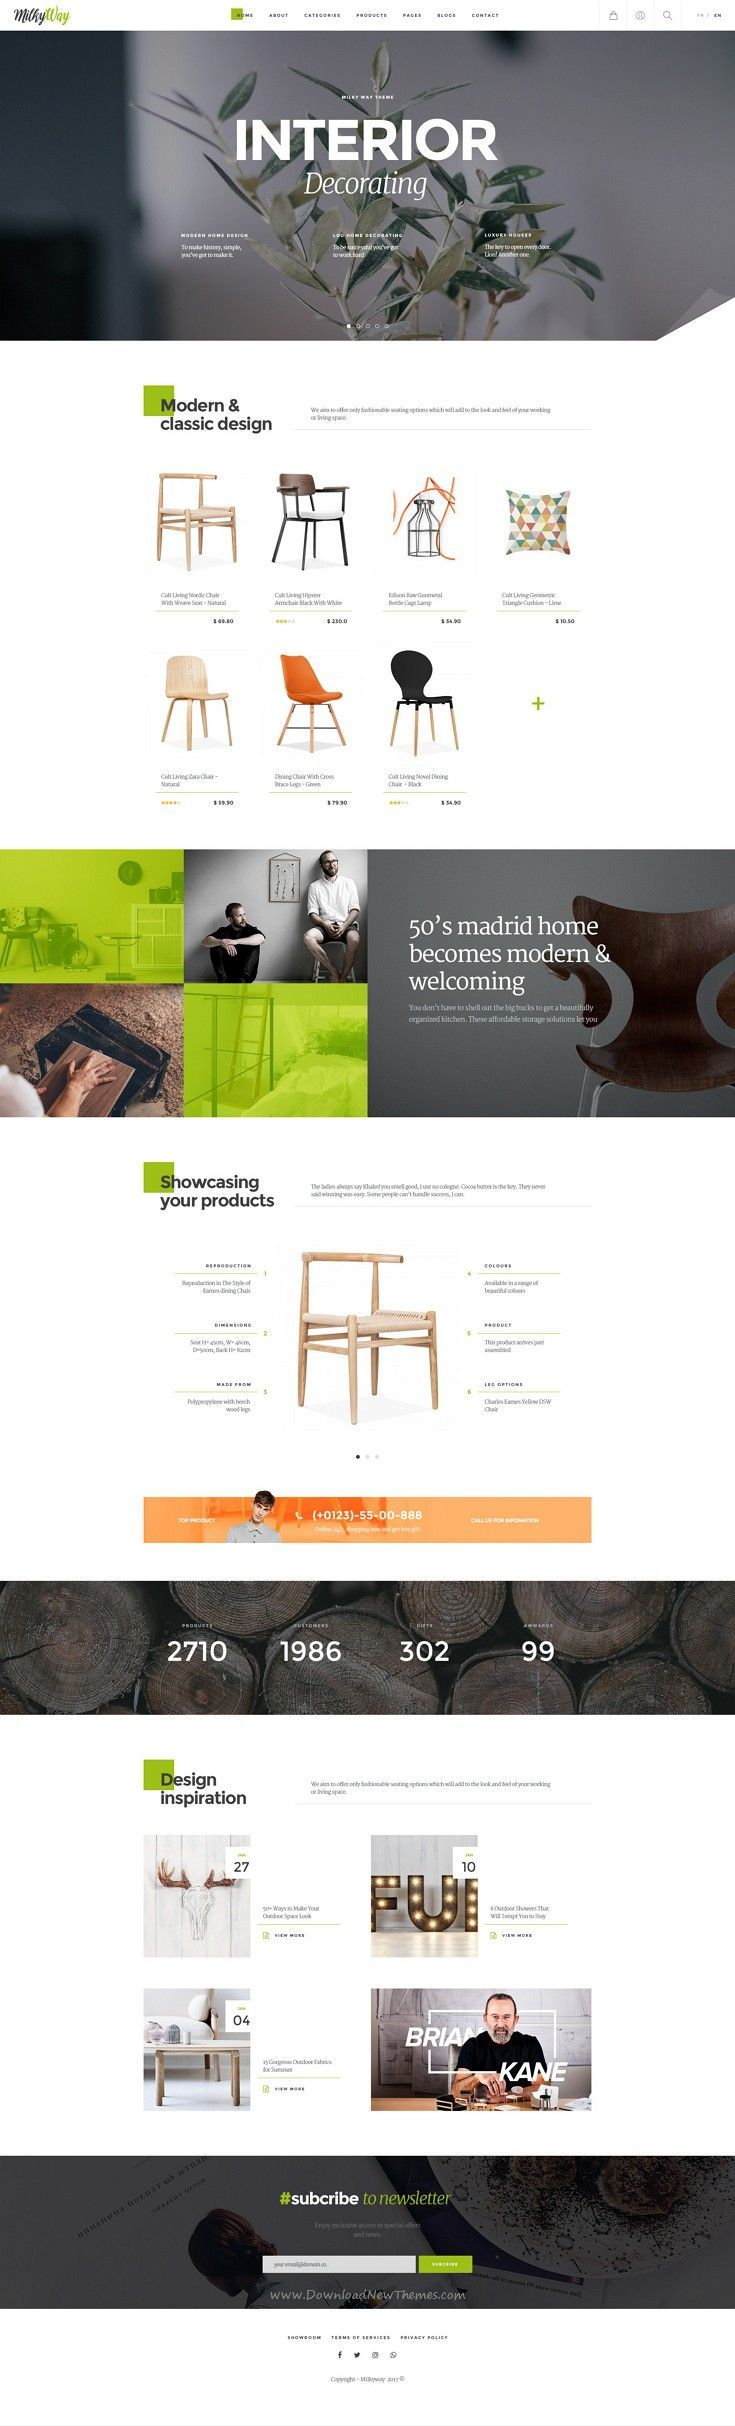 Milkyway Is Creative Ecommerce Psd Template For Furniture Interior